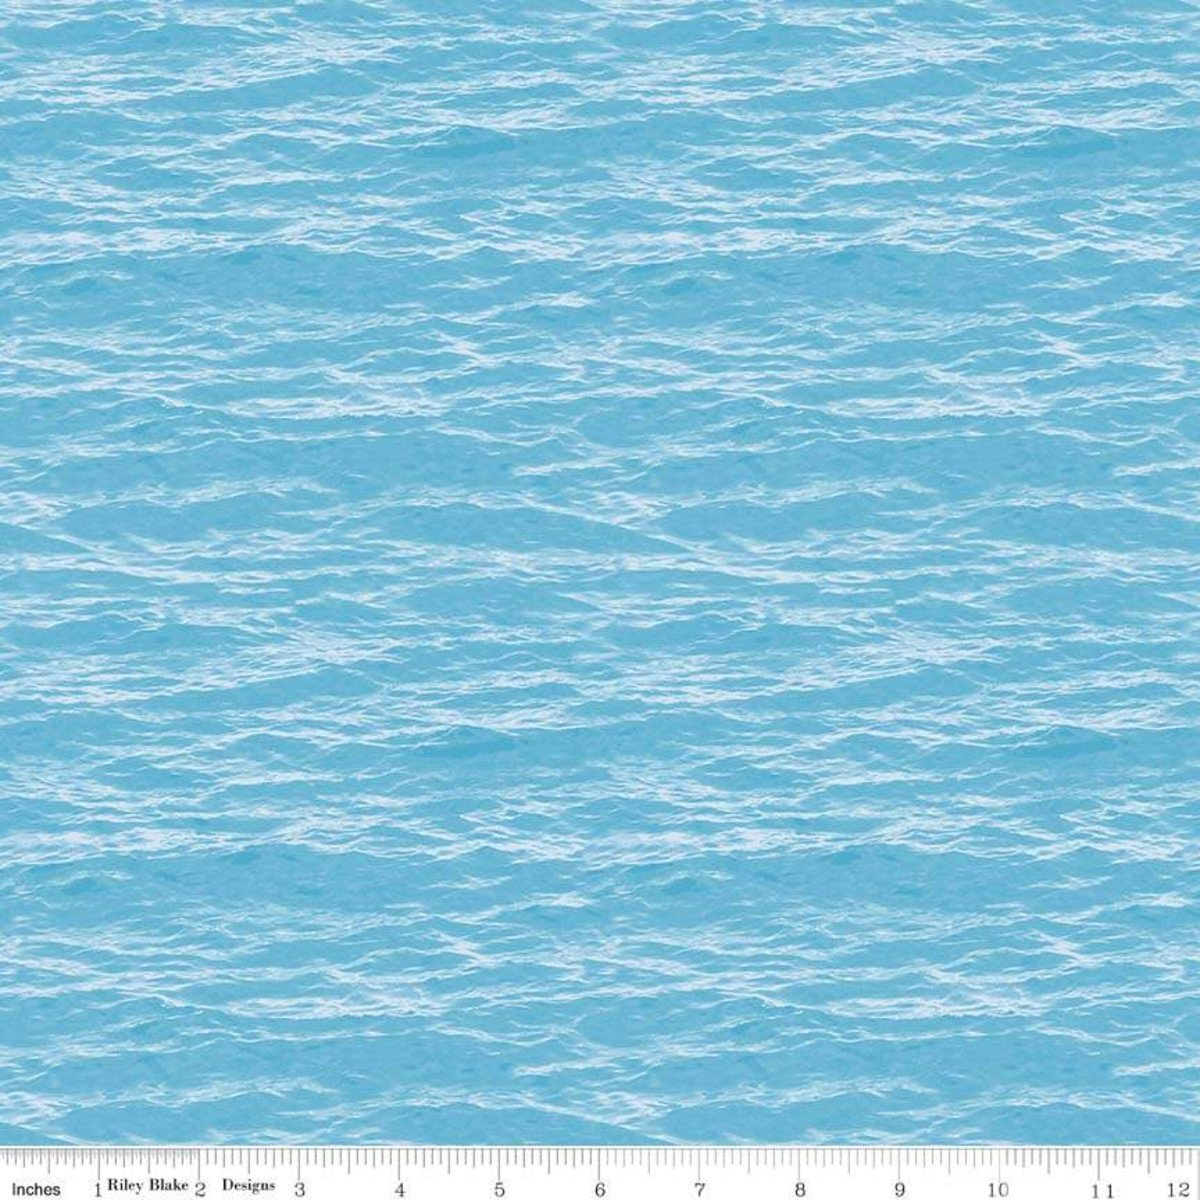 Light Blue Water - Fish and Fowl - C8731-LTBLUE